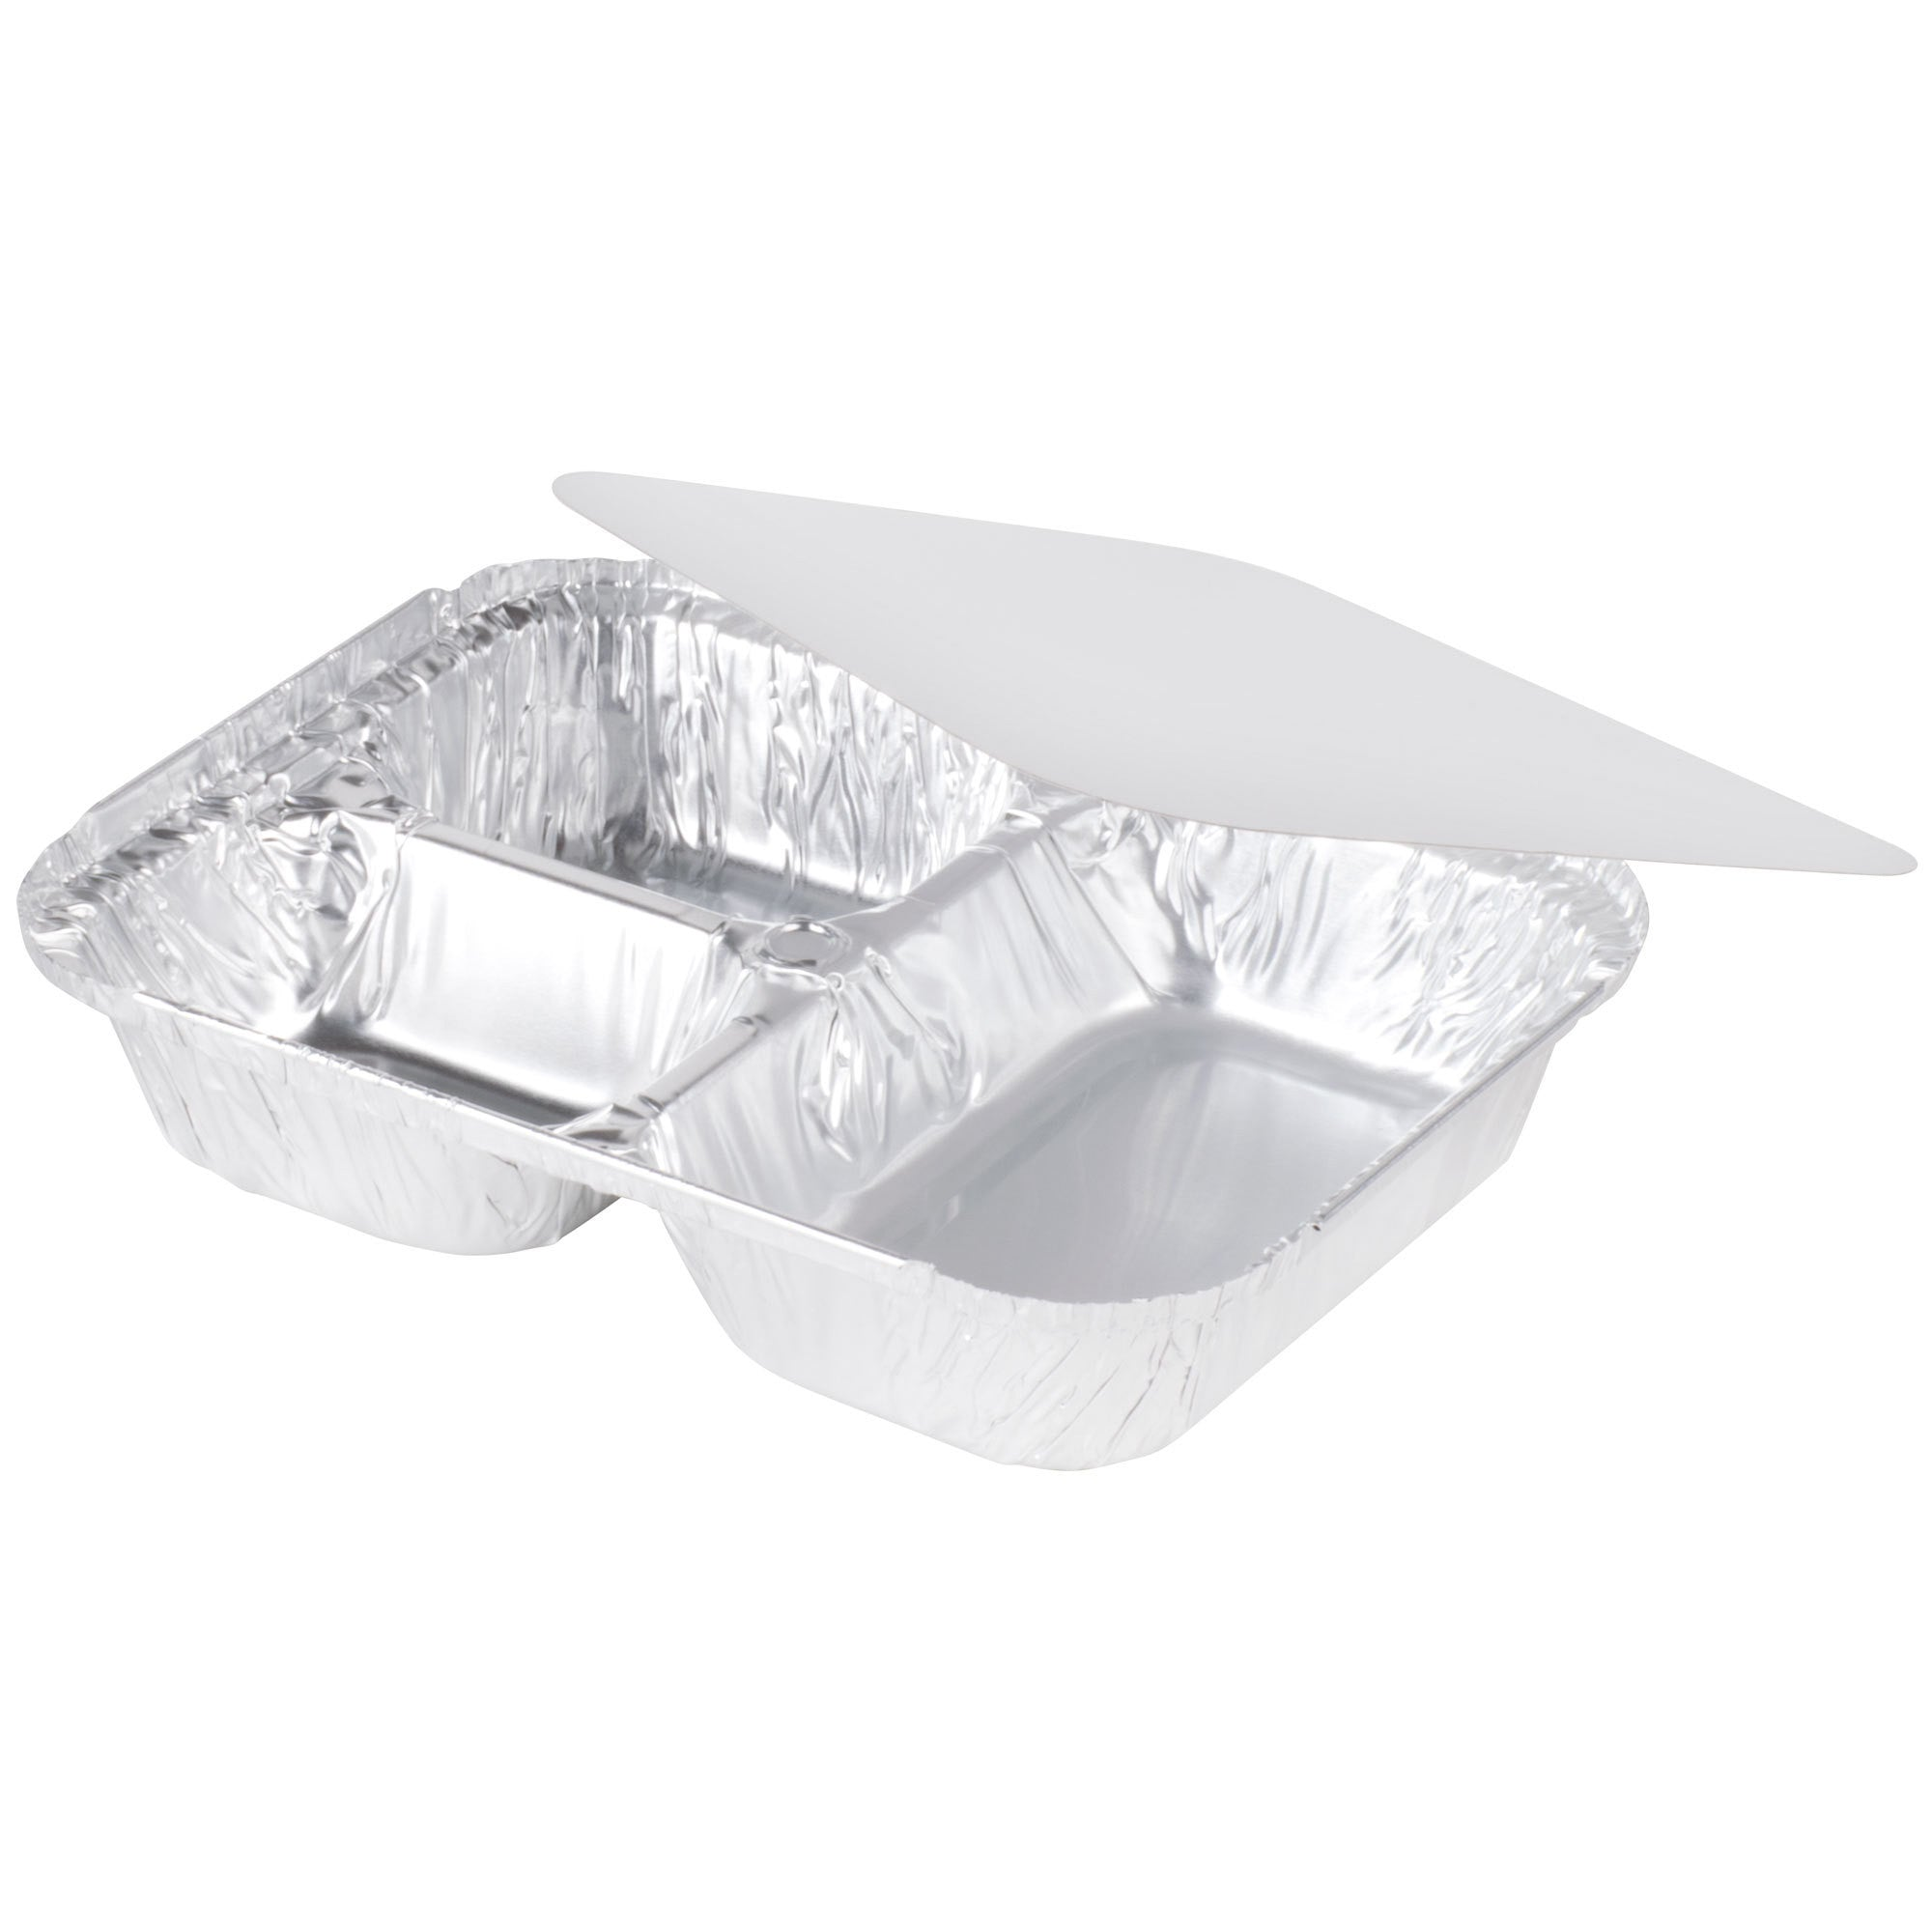 tv dinner trays. tv dinner tray, set of 10 silver foil disposable plates with lids,3 compartment tv trays u